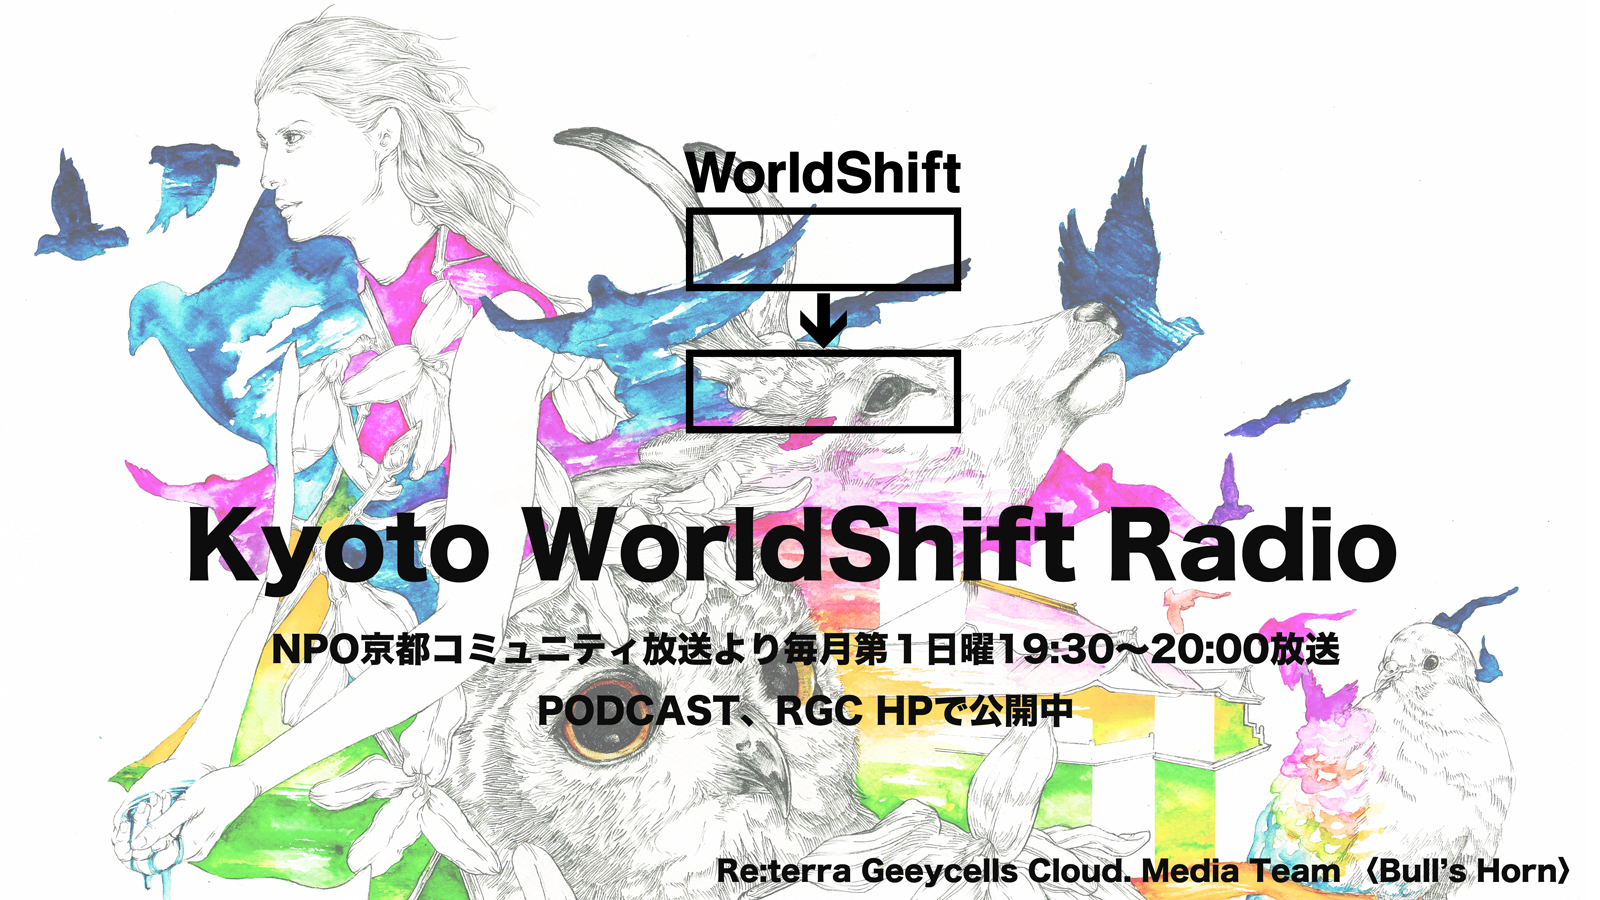 Kyoto WorldShift Radio